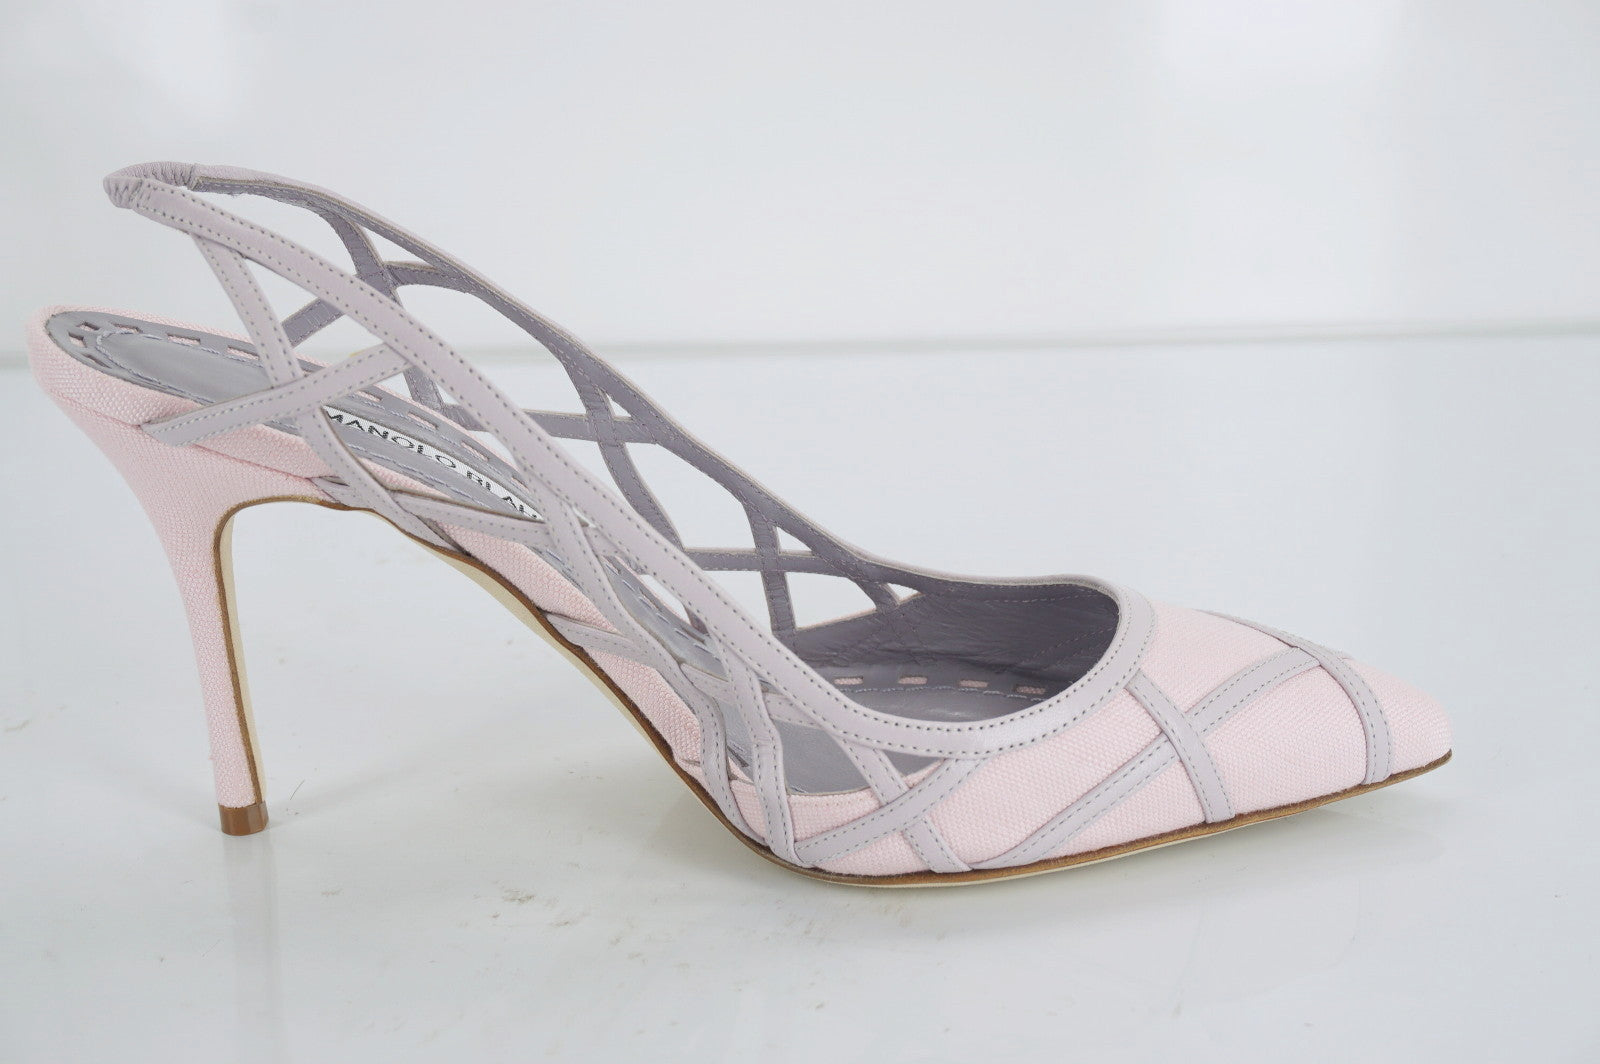 Manolo Blahnik Enatos Pink Purple Lattice Slingback Pointy Pumps SZ 37 NIB $1045